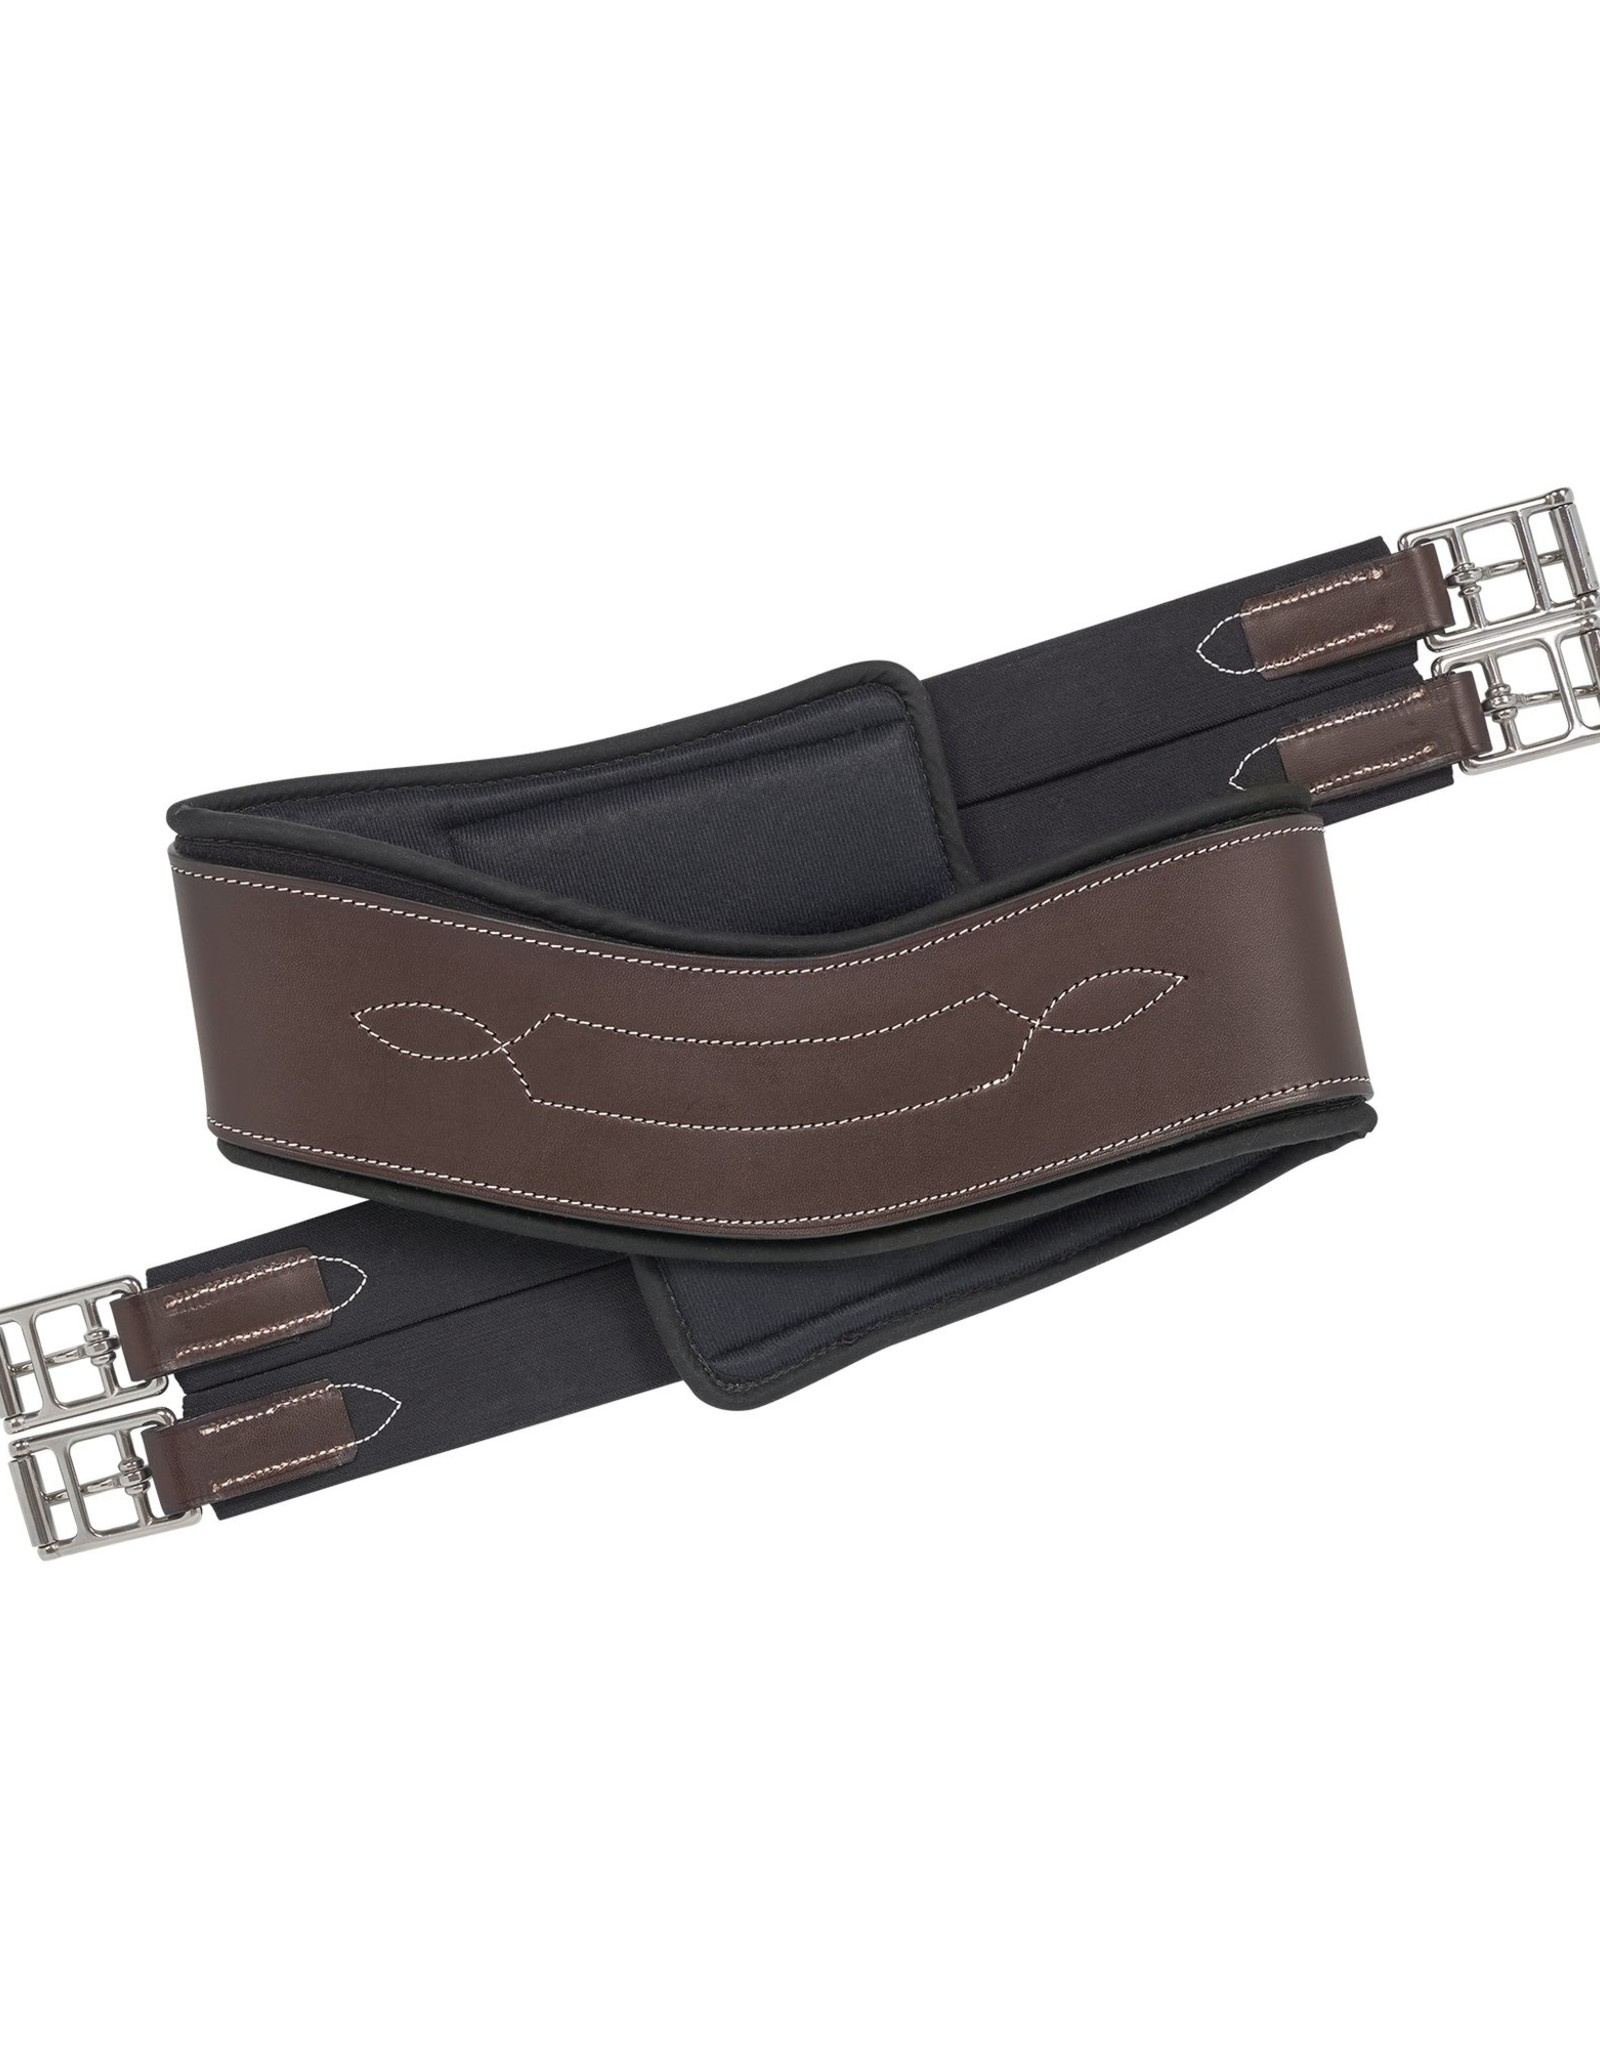 EQUIFIT HUNTER GIRTH WITH T-FOAM LINER